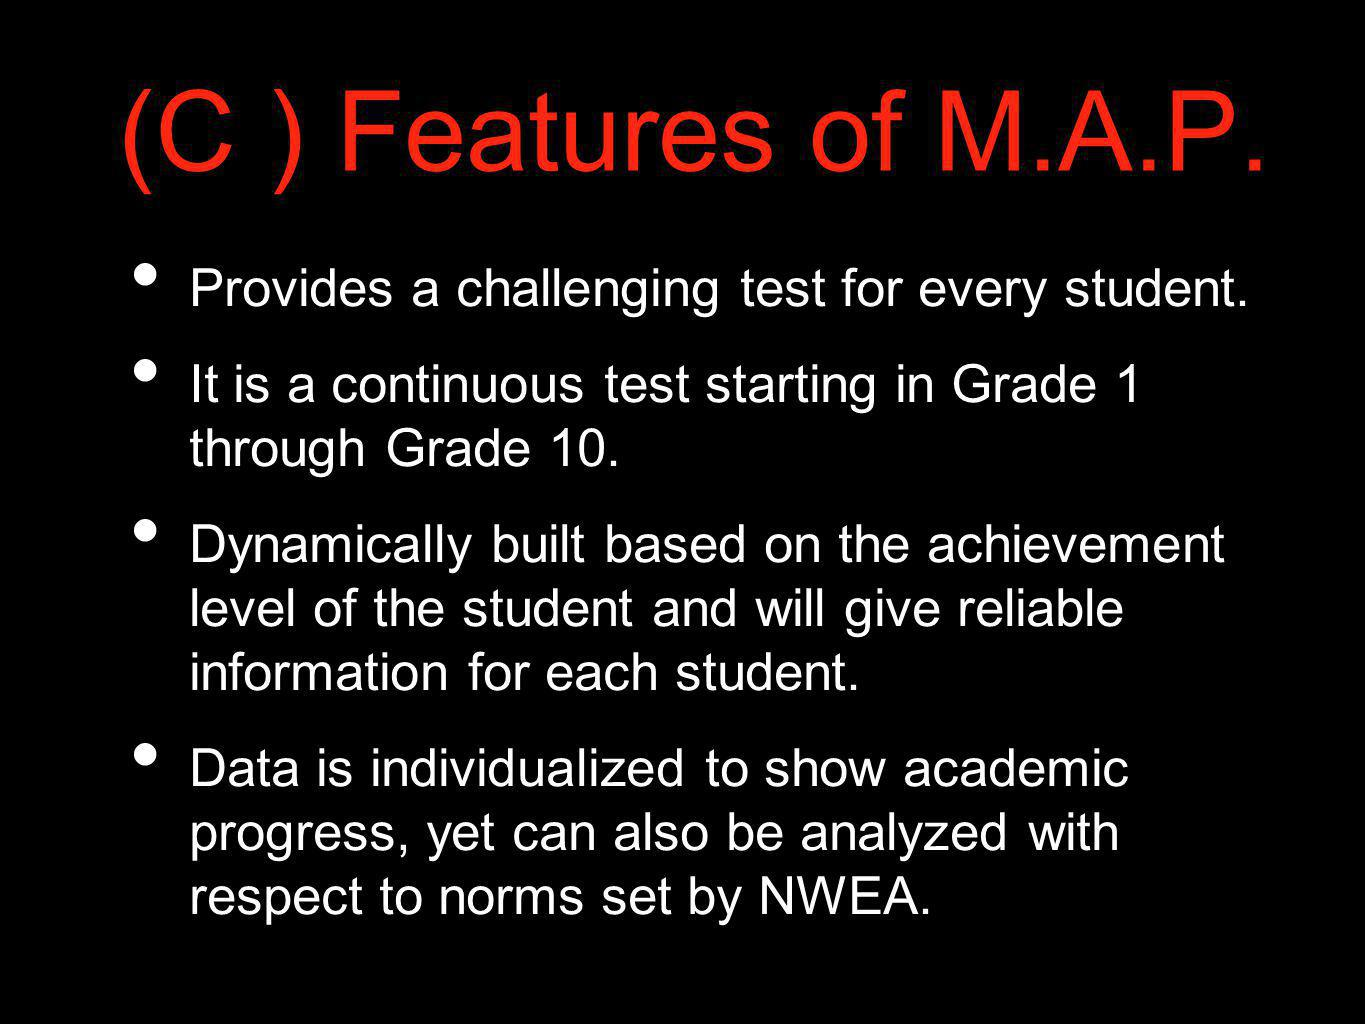 (C ) Features of M.A.P. Provides a challenging test for every student.